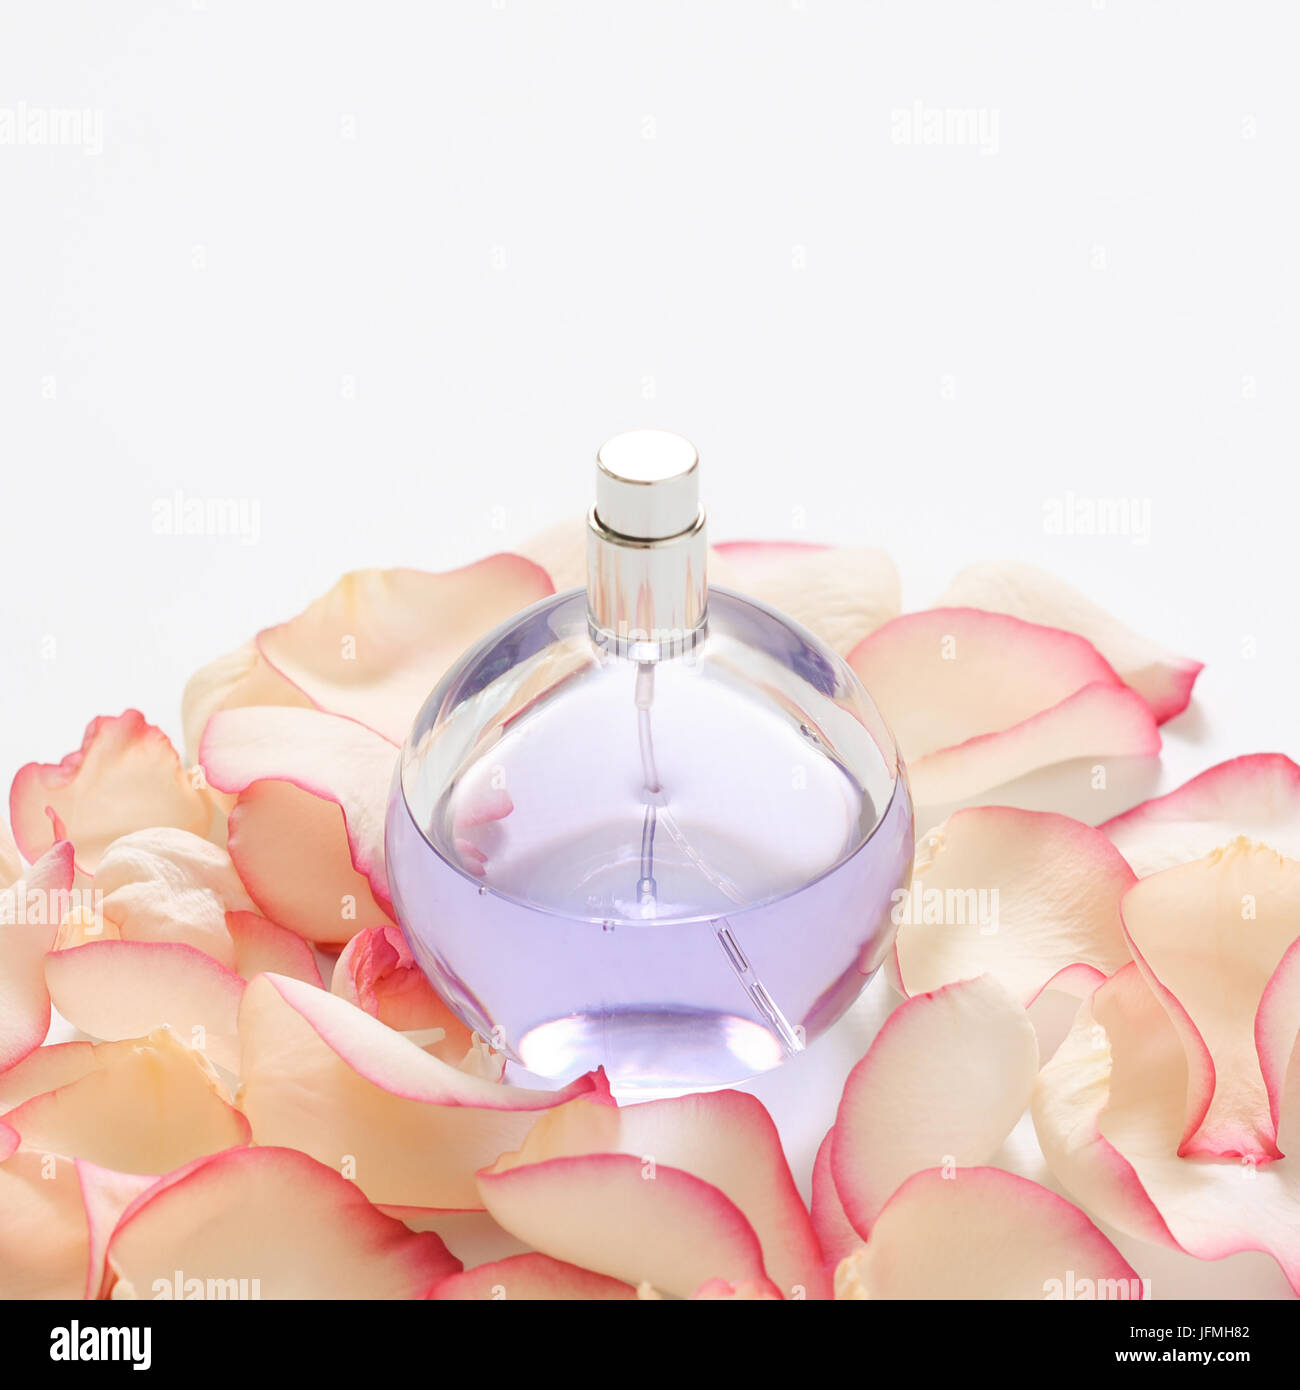 Perfume bottle with flower petals on light background. Perfumery, fragrance collection. Women accessories. - Stock Image